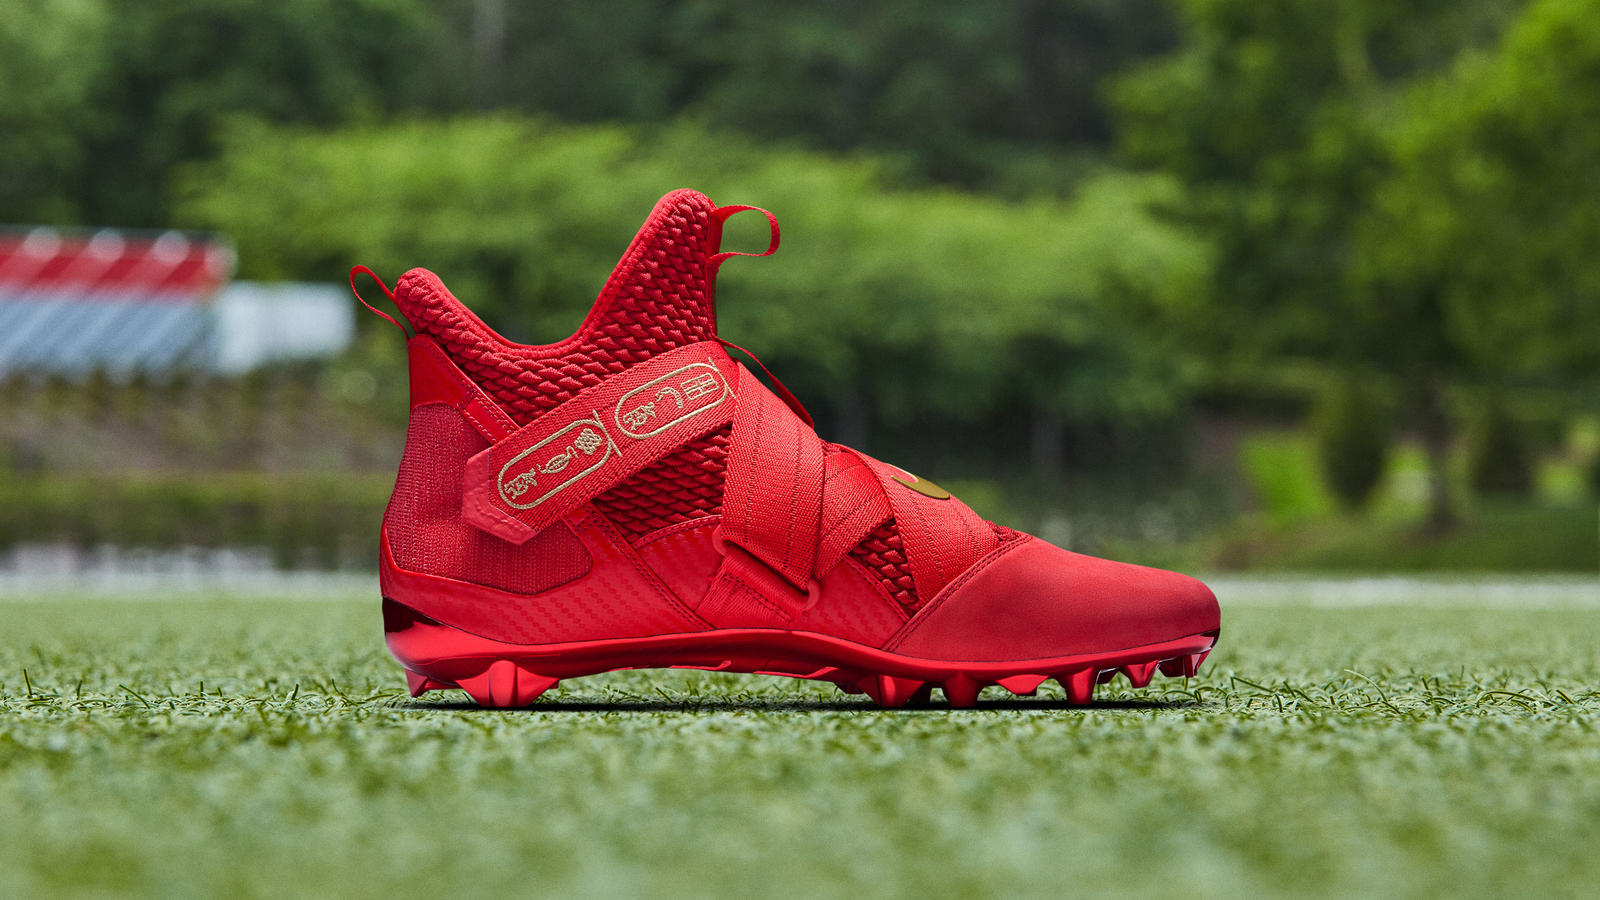 detailed look b75d7 ec7d6 Nike LEBRON Soldier 12 Cleat (Odell Beckham Jr. Special Edition) 1